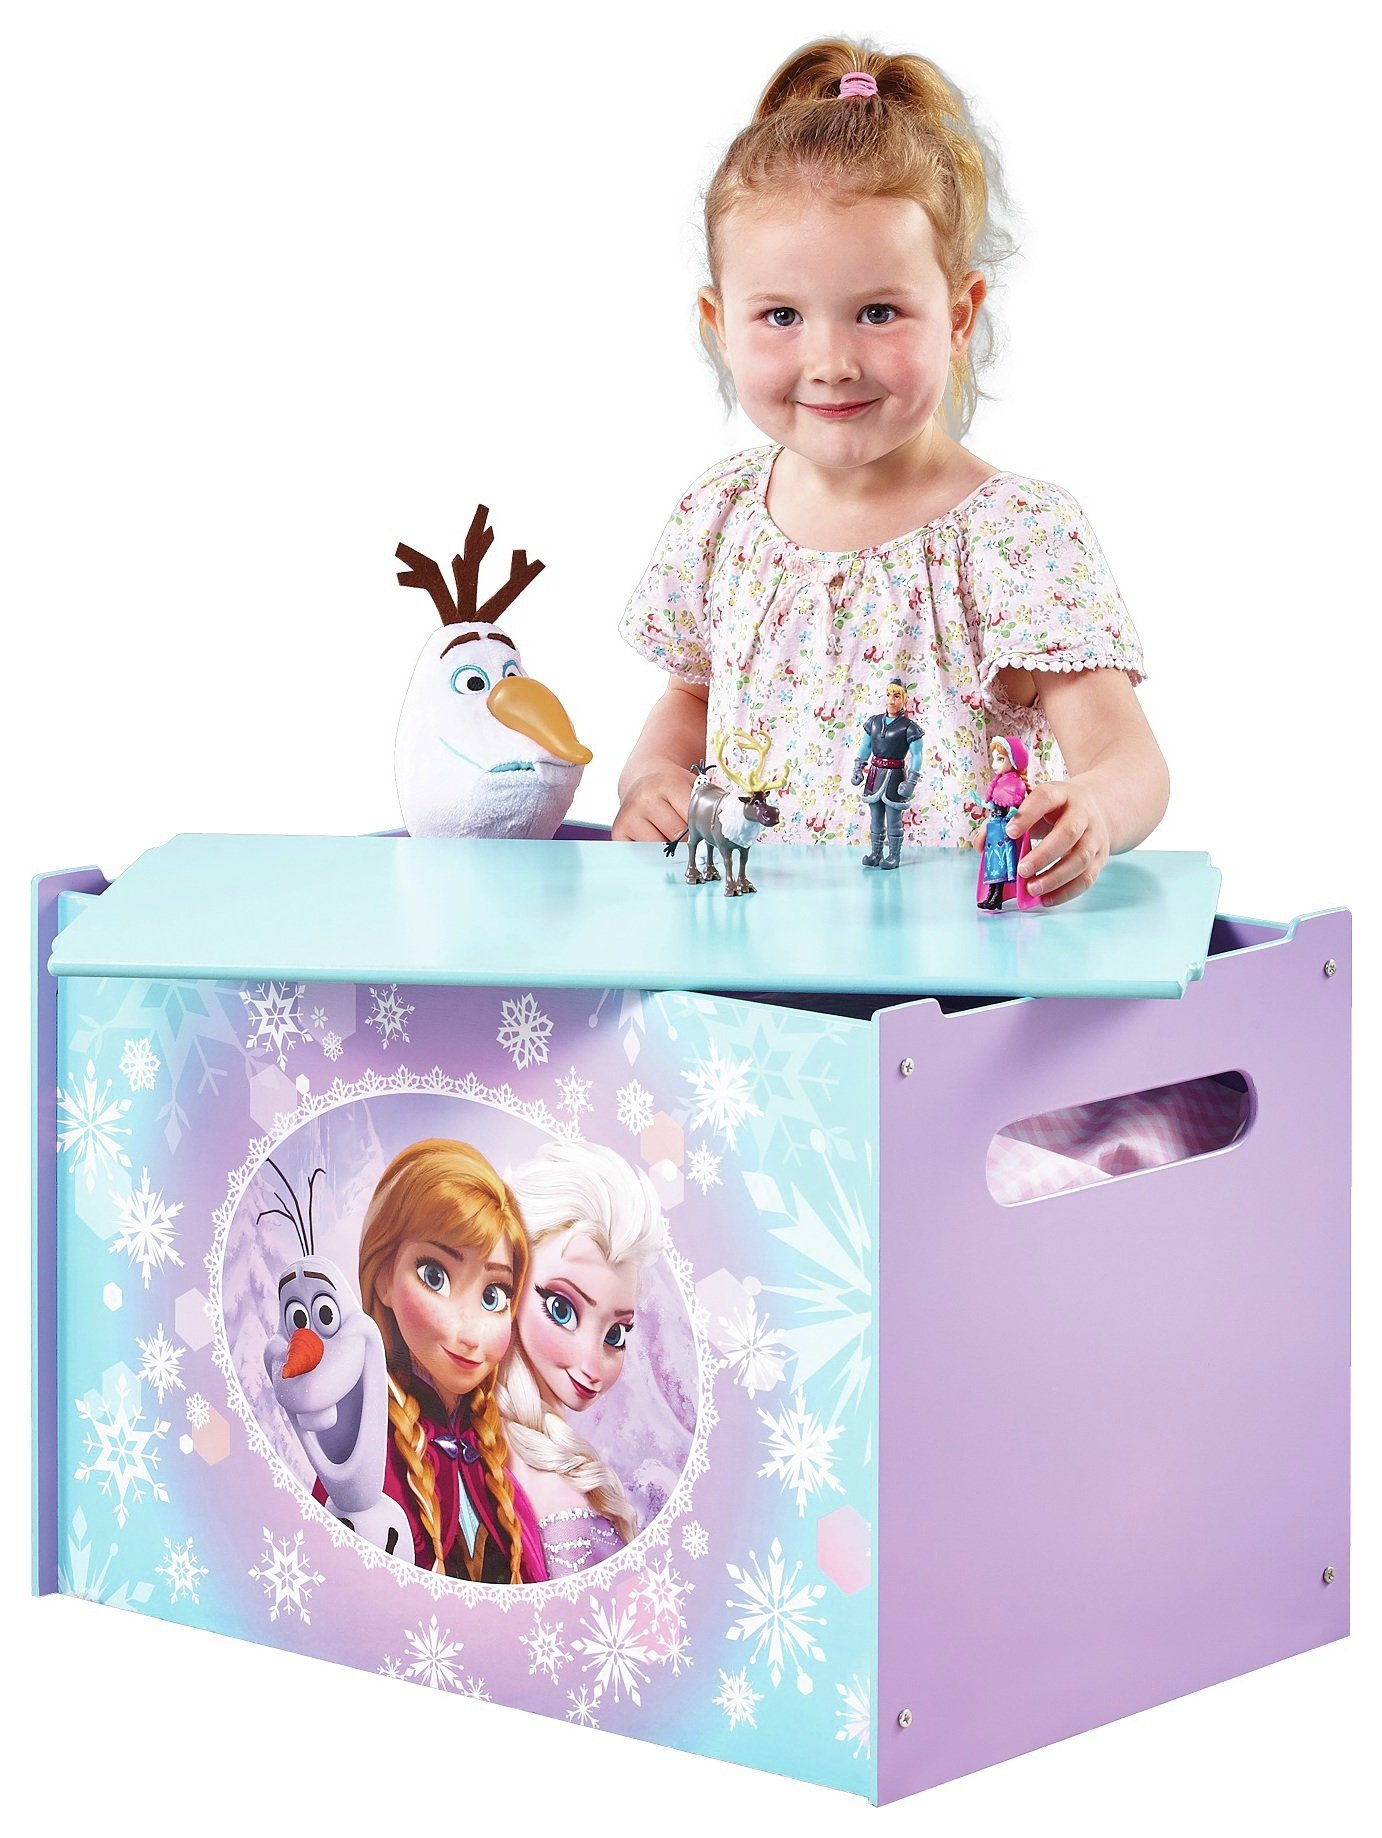 Frozen Toy Box from Disney Frozen